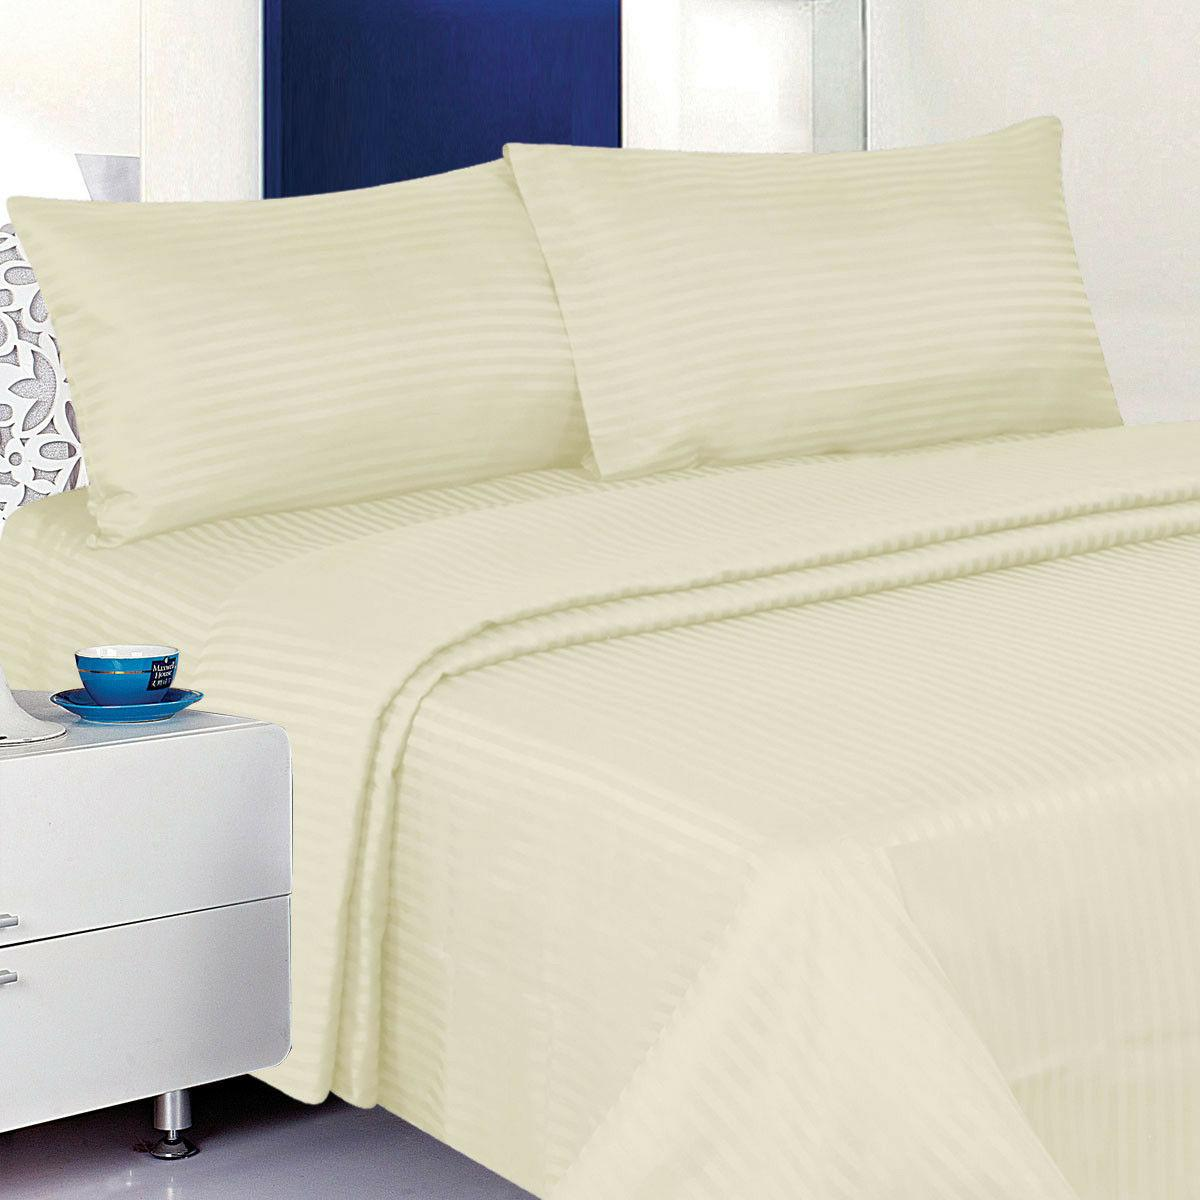 1800 Count Deluxe 4-Piece Dobby Stripe 100% Deep Pocket Bed Set